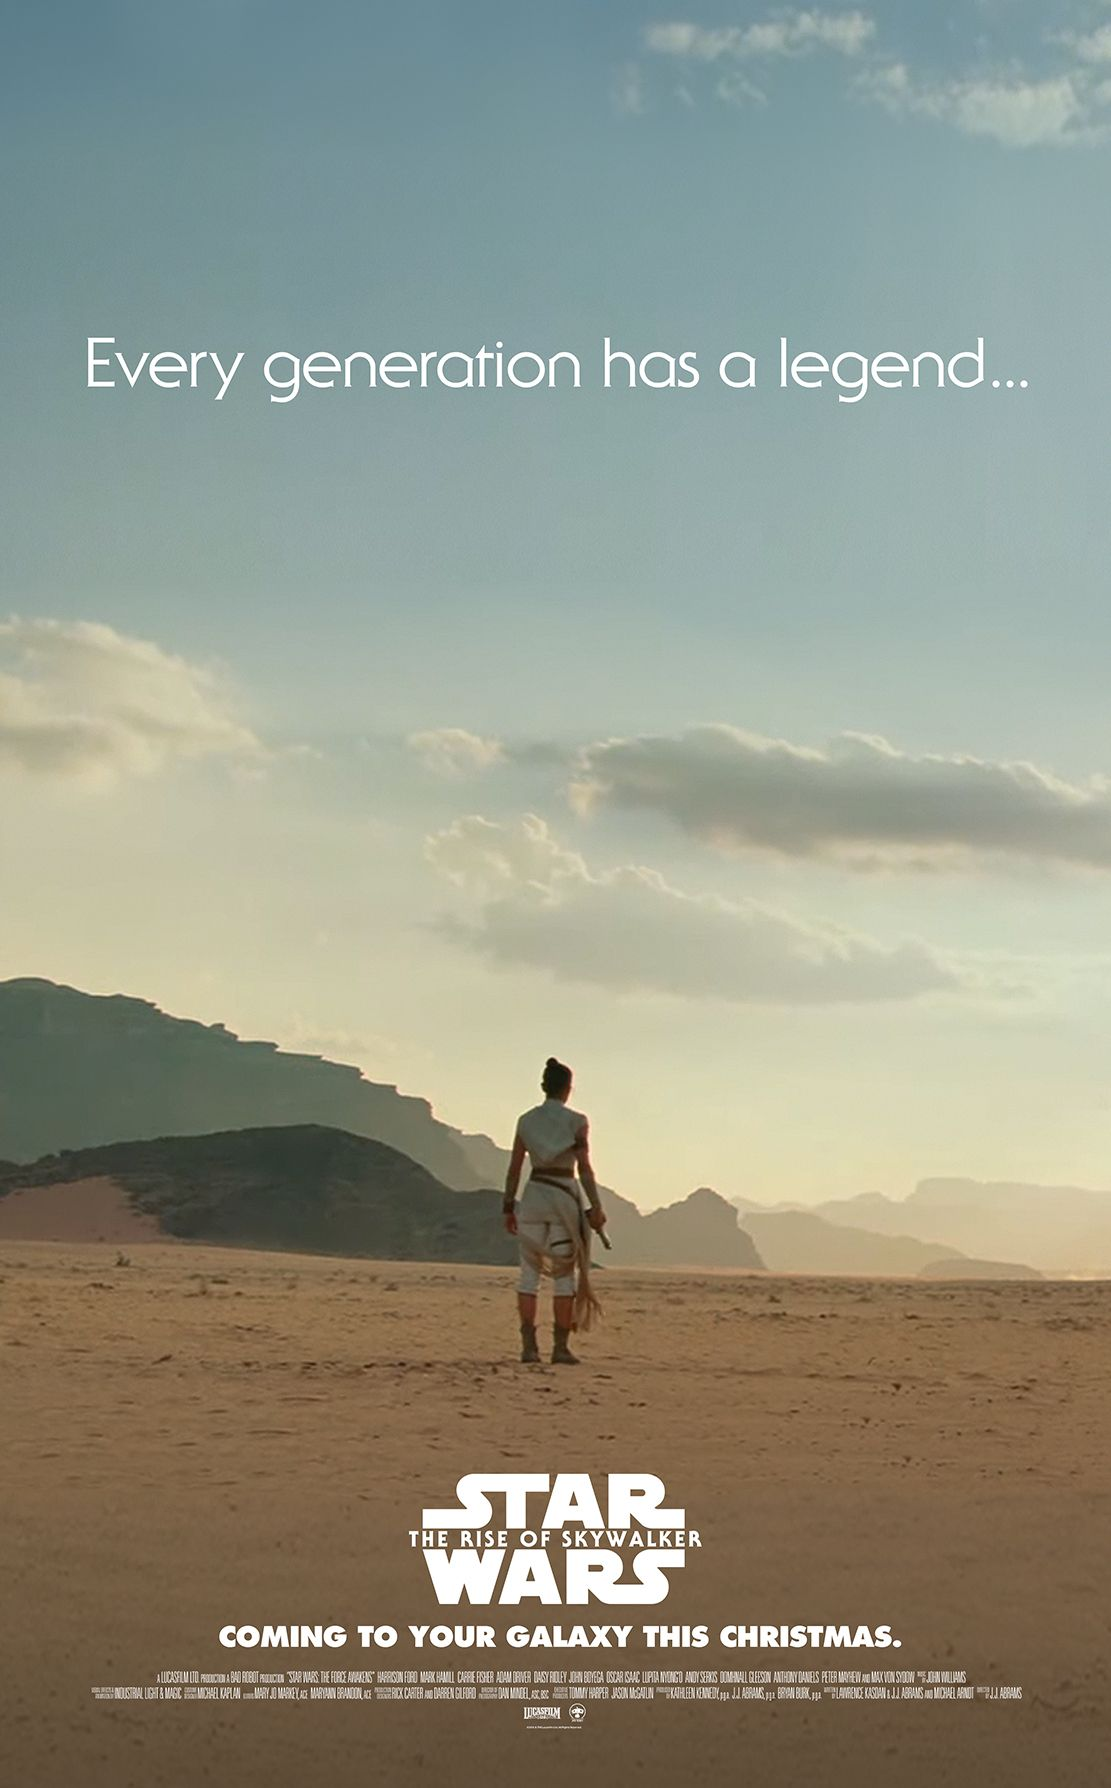 Star Wars The Rise Of Skywalker Every Generation Has A Legend Fan Made Minimal Teaser Poster Rey Star Wars Star Wars Images Star Wars Characters